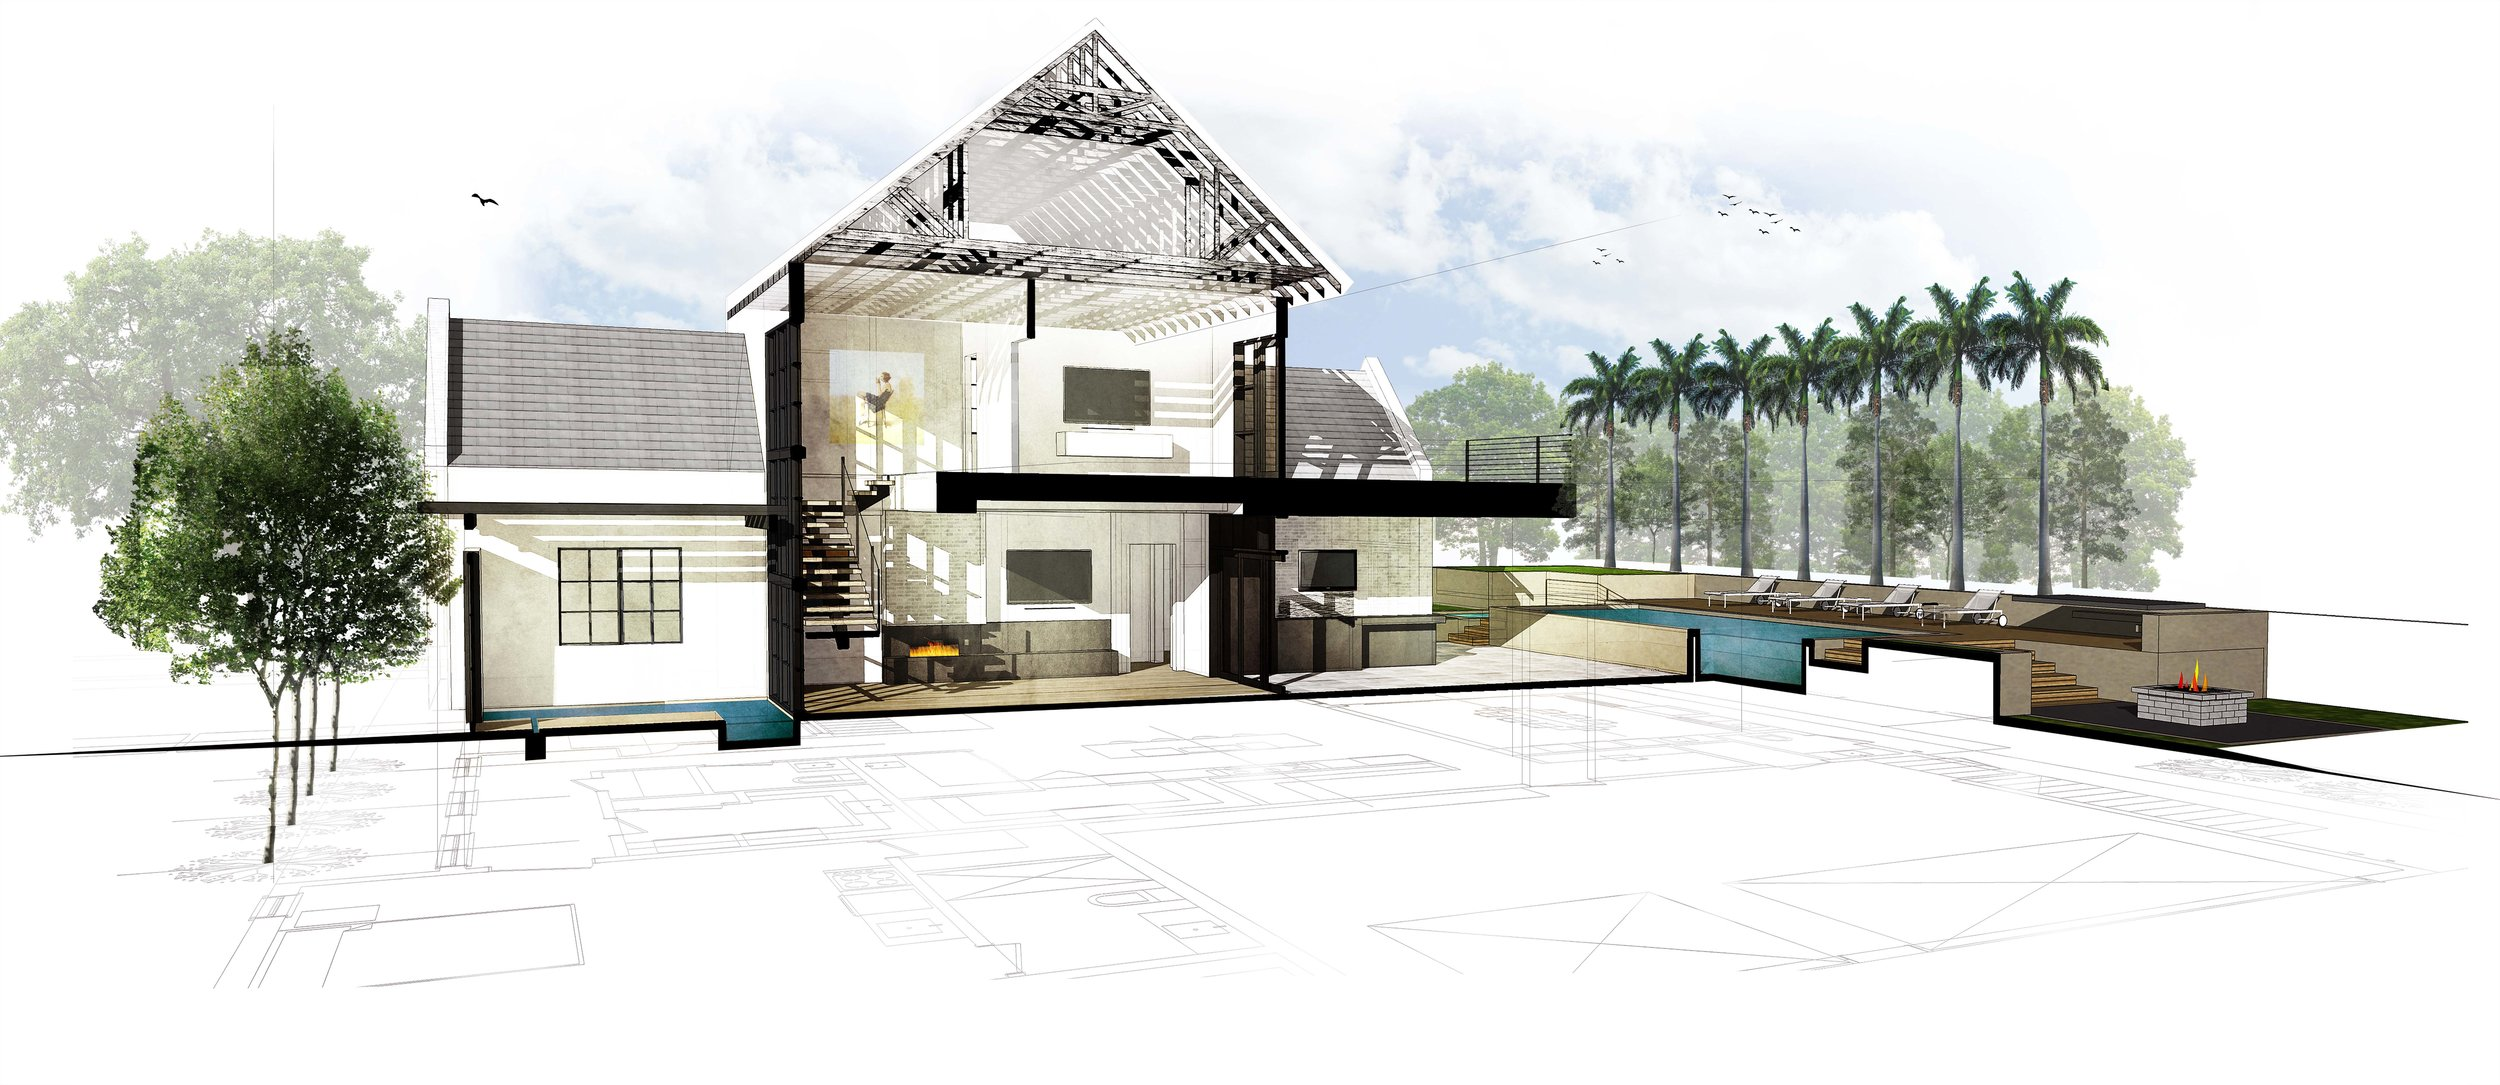 render section perpective sealy SMALL RES.jpg